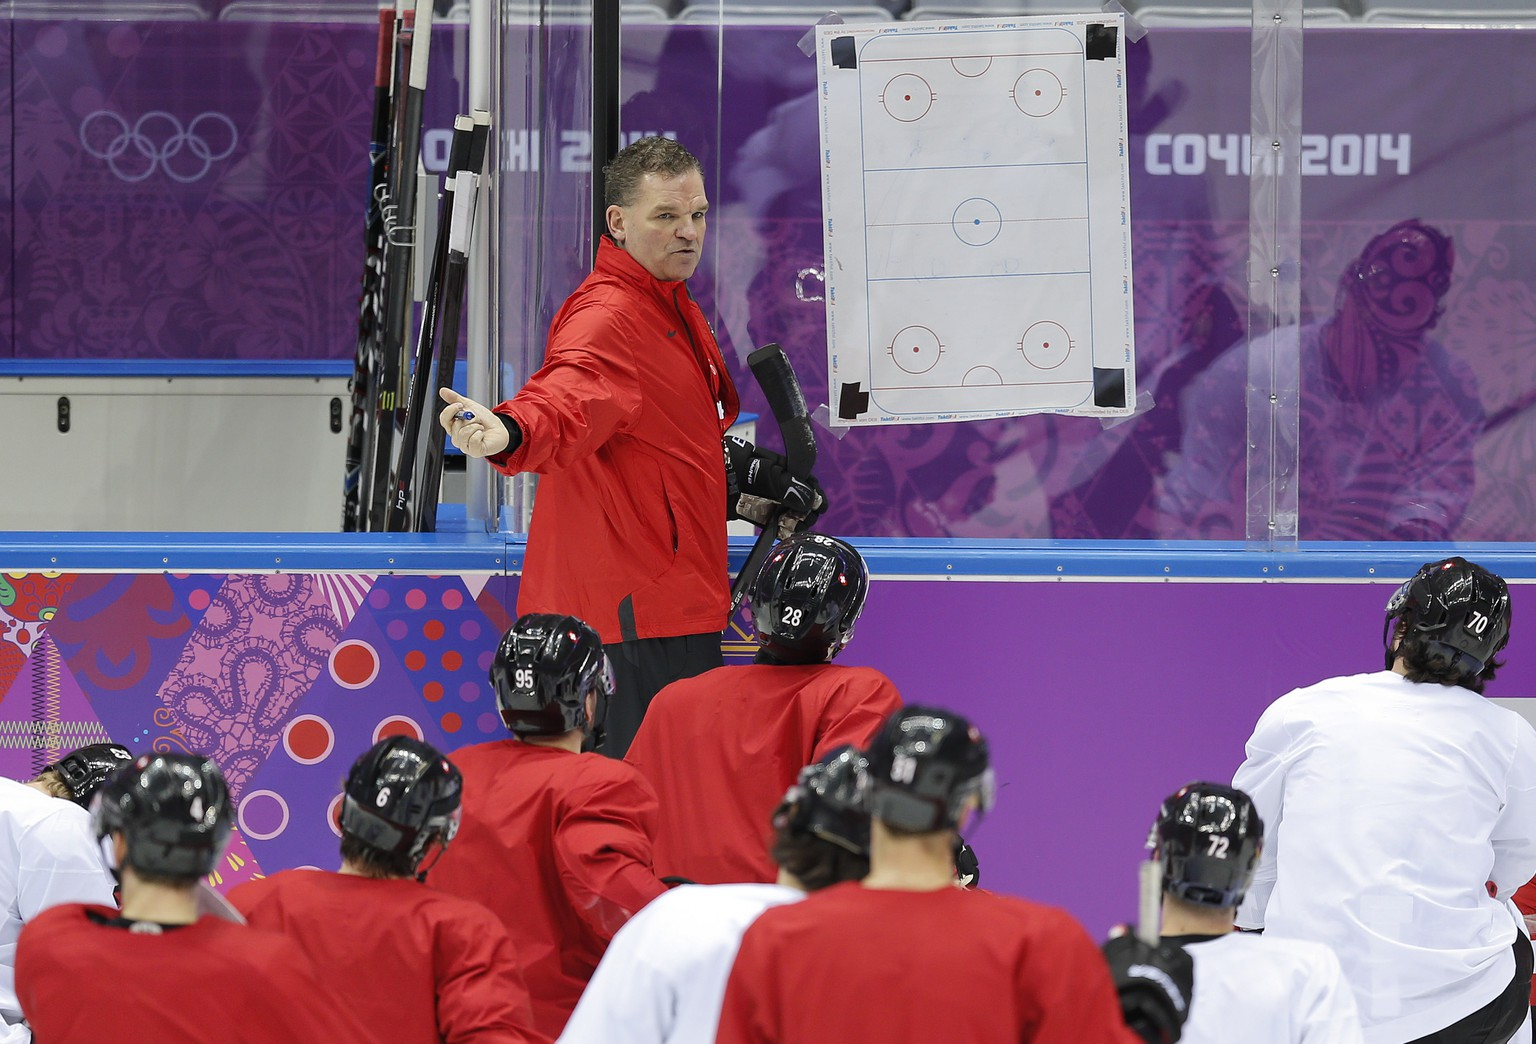 Swiss ice hockey head coach Sean Simpson instructs players during a training session at the Bolshoy Ice Dome at the the 2014 Winter Olympics, Saturday, Feb. 8, 2014, in Sochi, Russia. (AP Photo/Julio Cortez)